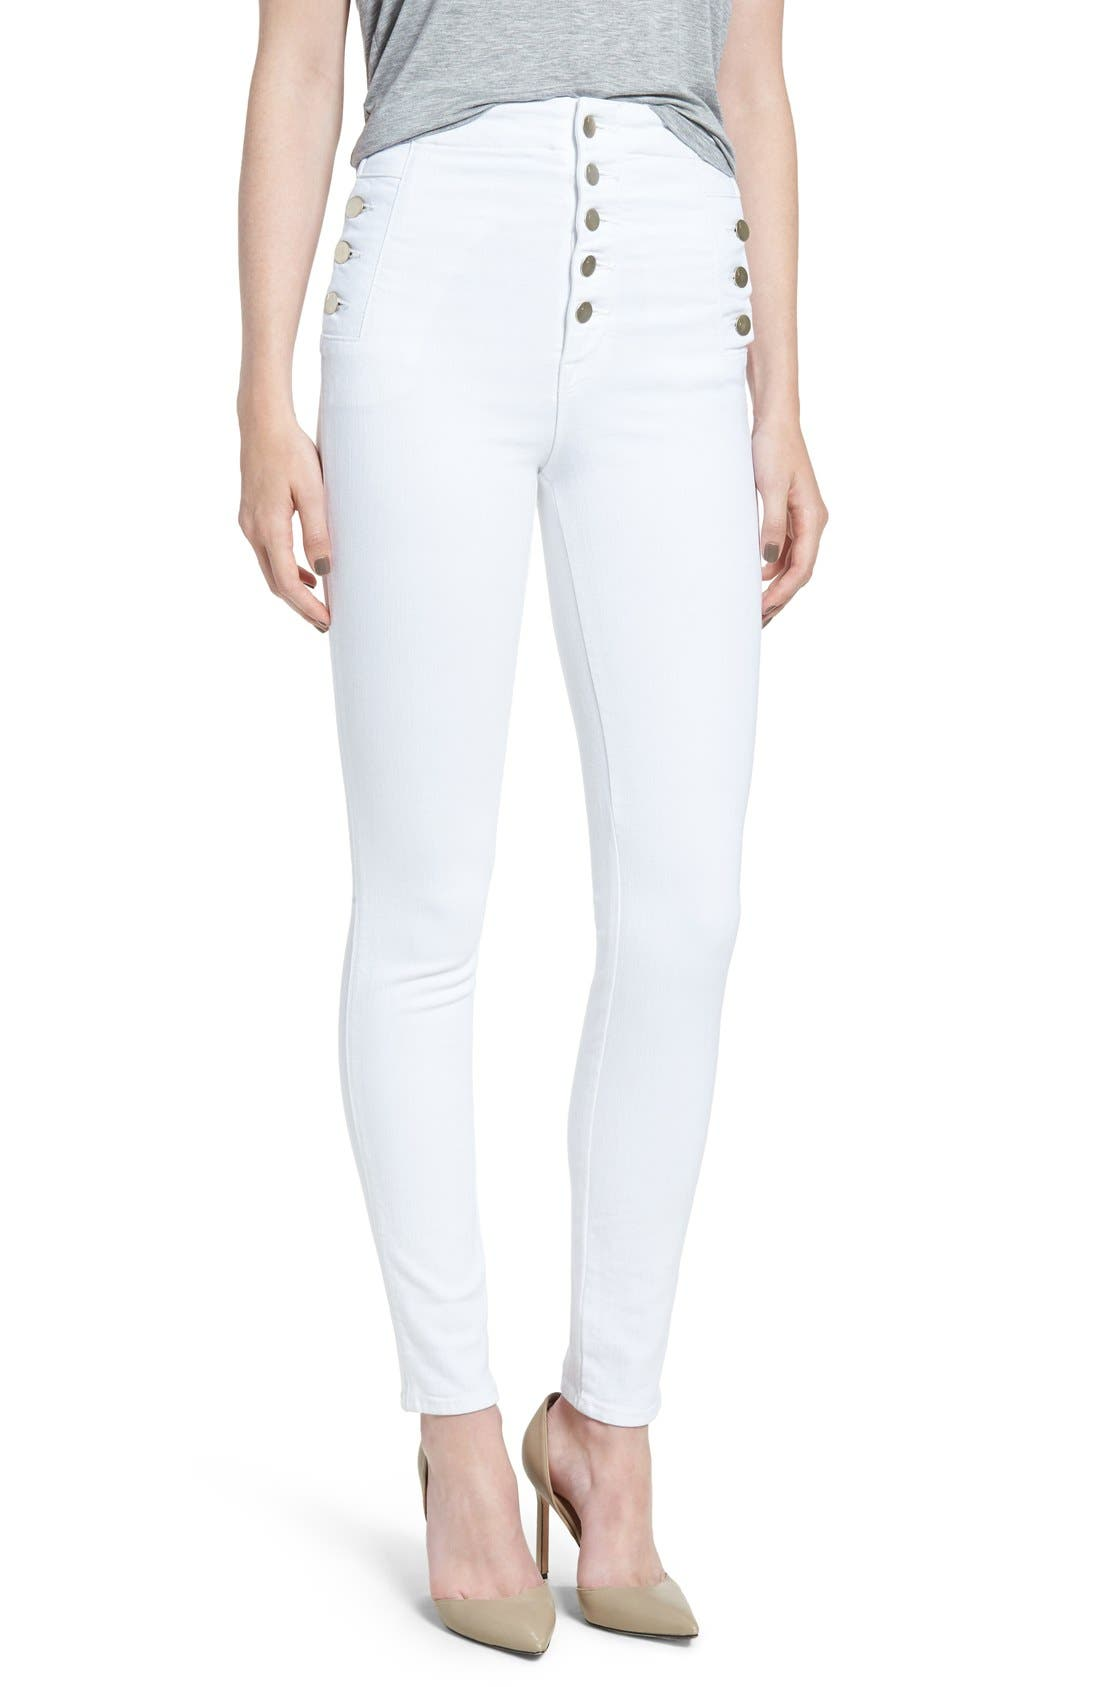 Alternate Image 1 Selected - J Brand 'Natasha Sky High' High Rise Skinny Jeans (Blanc)